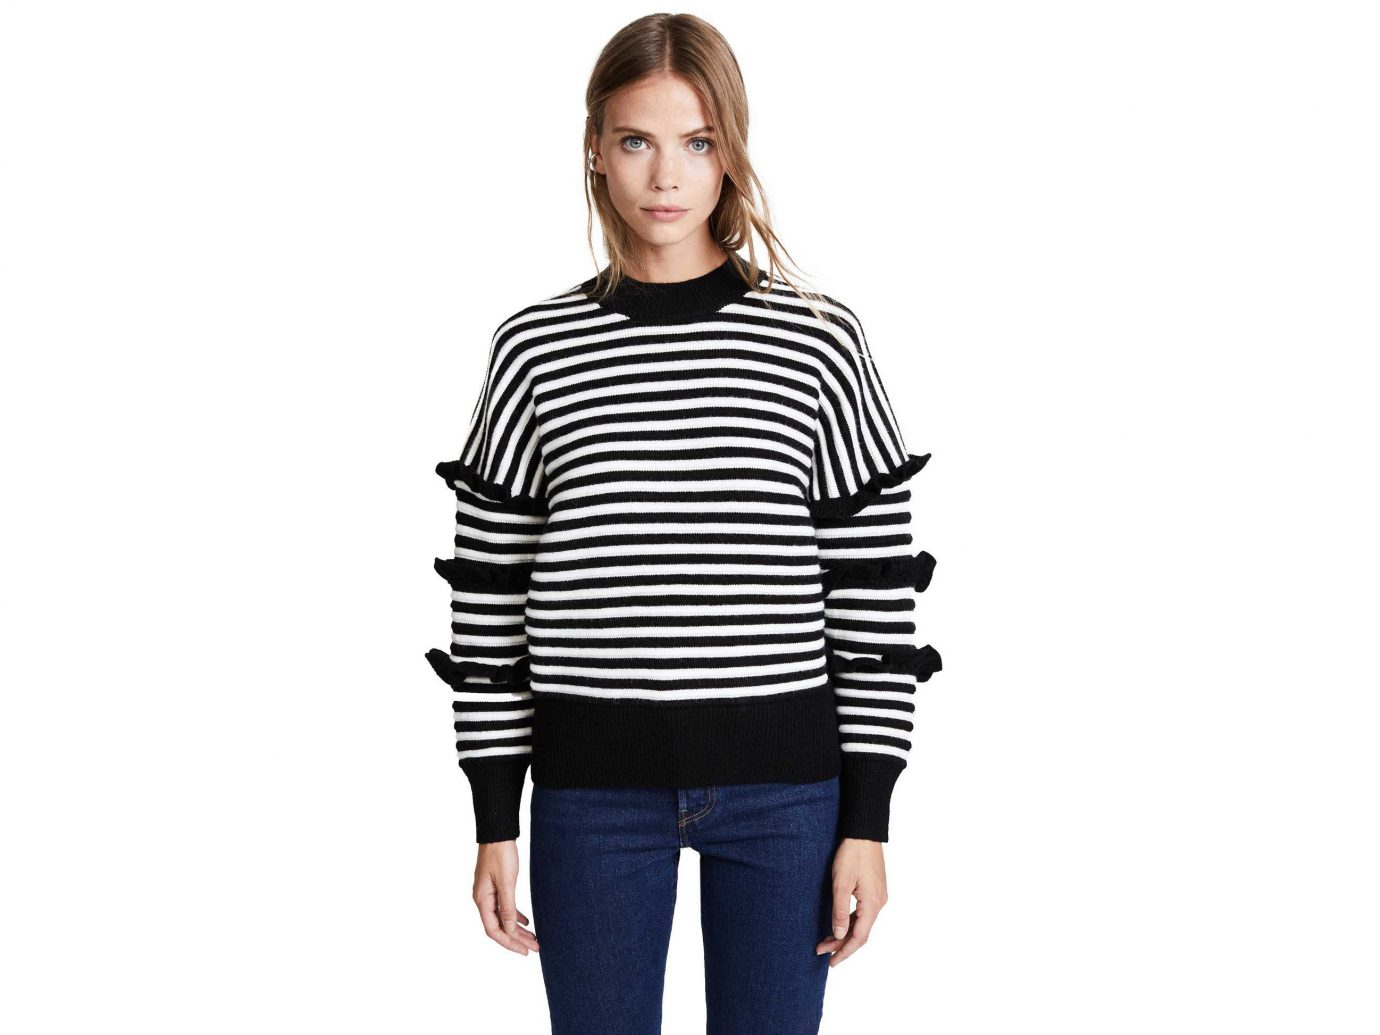 Style + Design Travel Shop person clothing sleeve standing shoulder striped sweater neck outerwear long sleeved t shirt joint fashion model product t shirt posing trouser